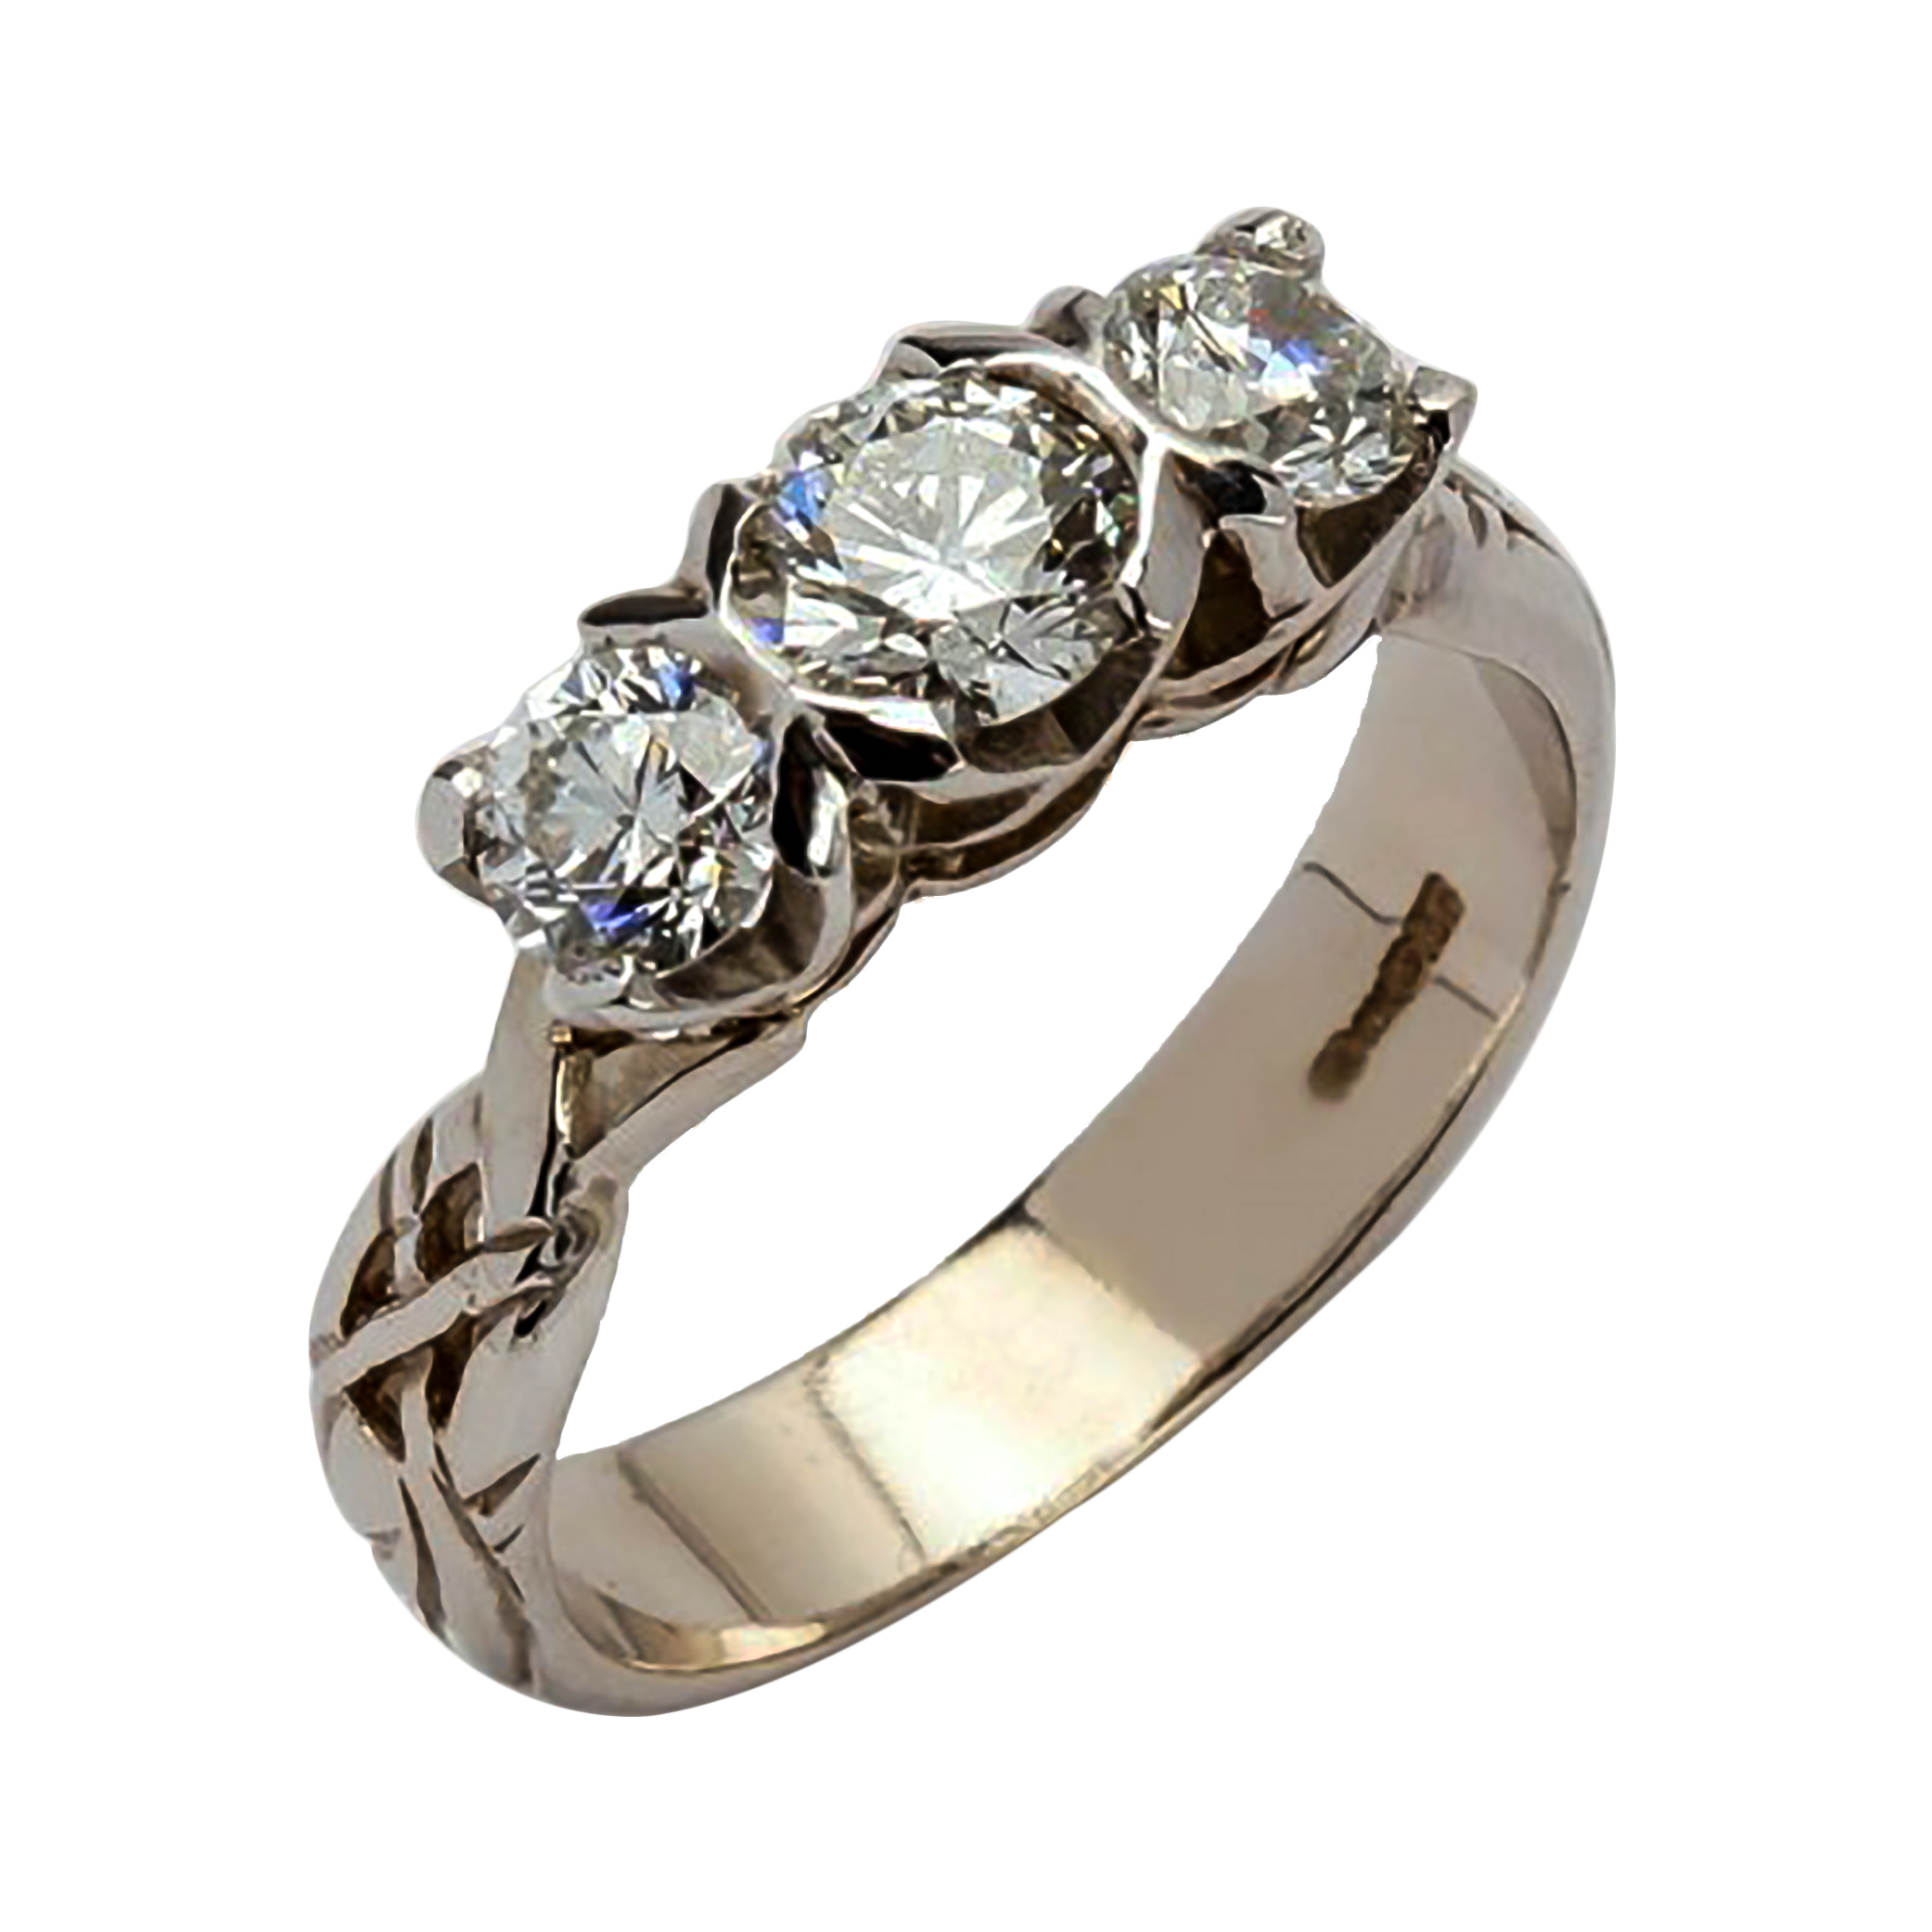 de pinterest enlarged trinity ring realreal cartier rings bling the small